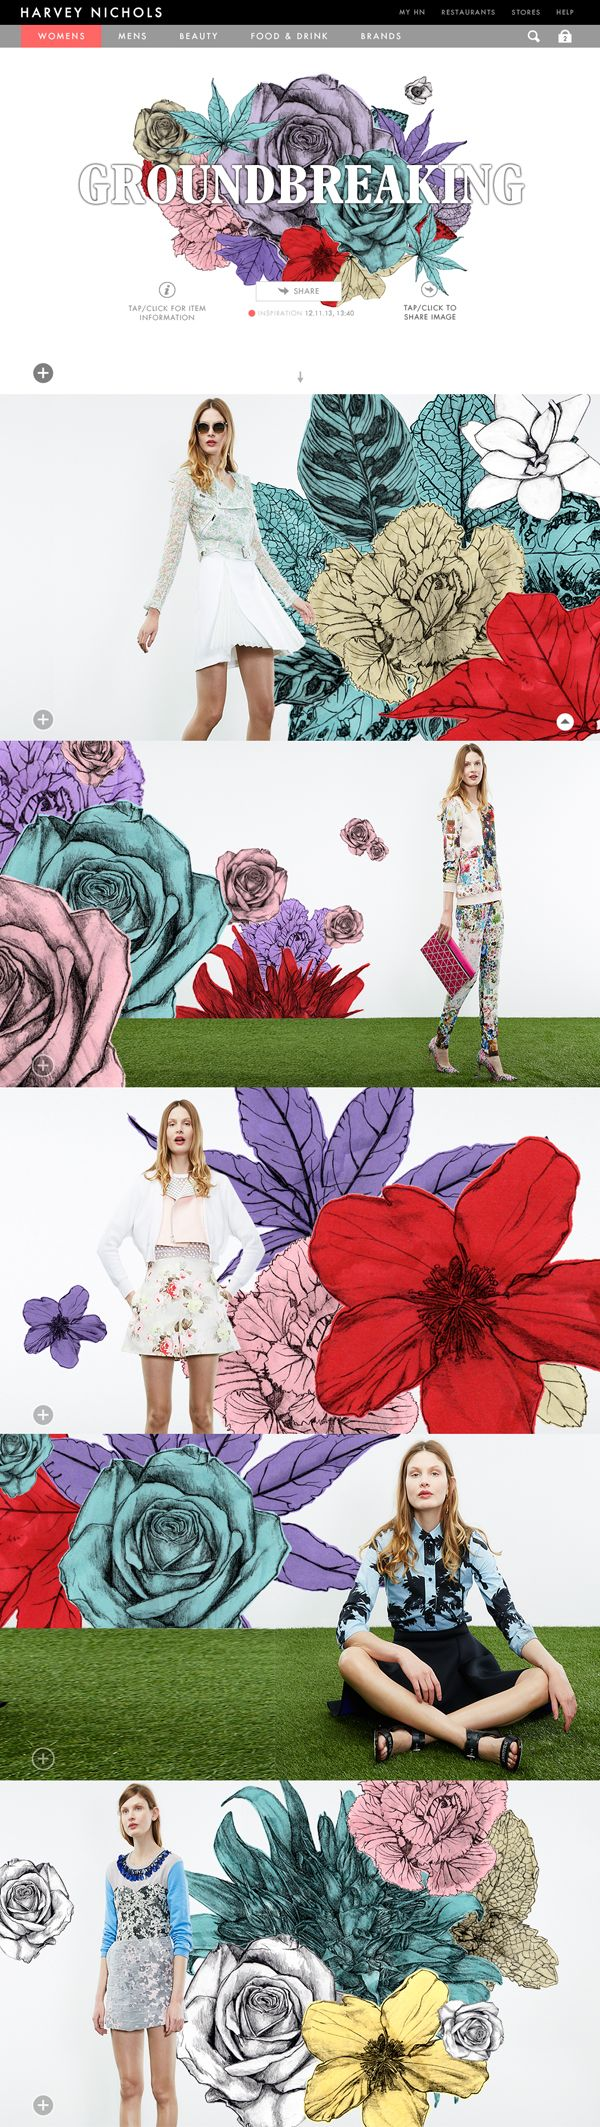 Florals, for Spring? GROUNDBREAKING on Behance